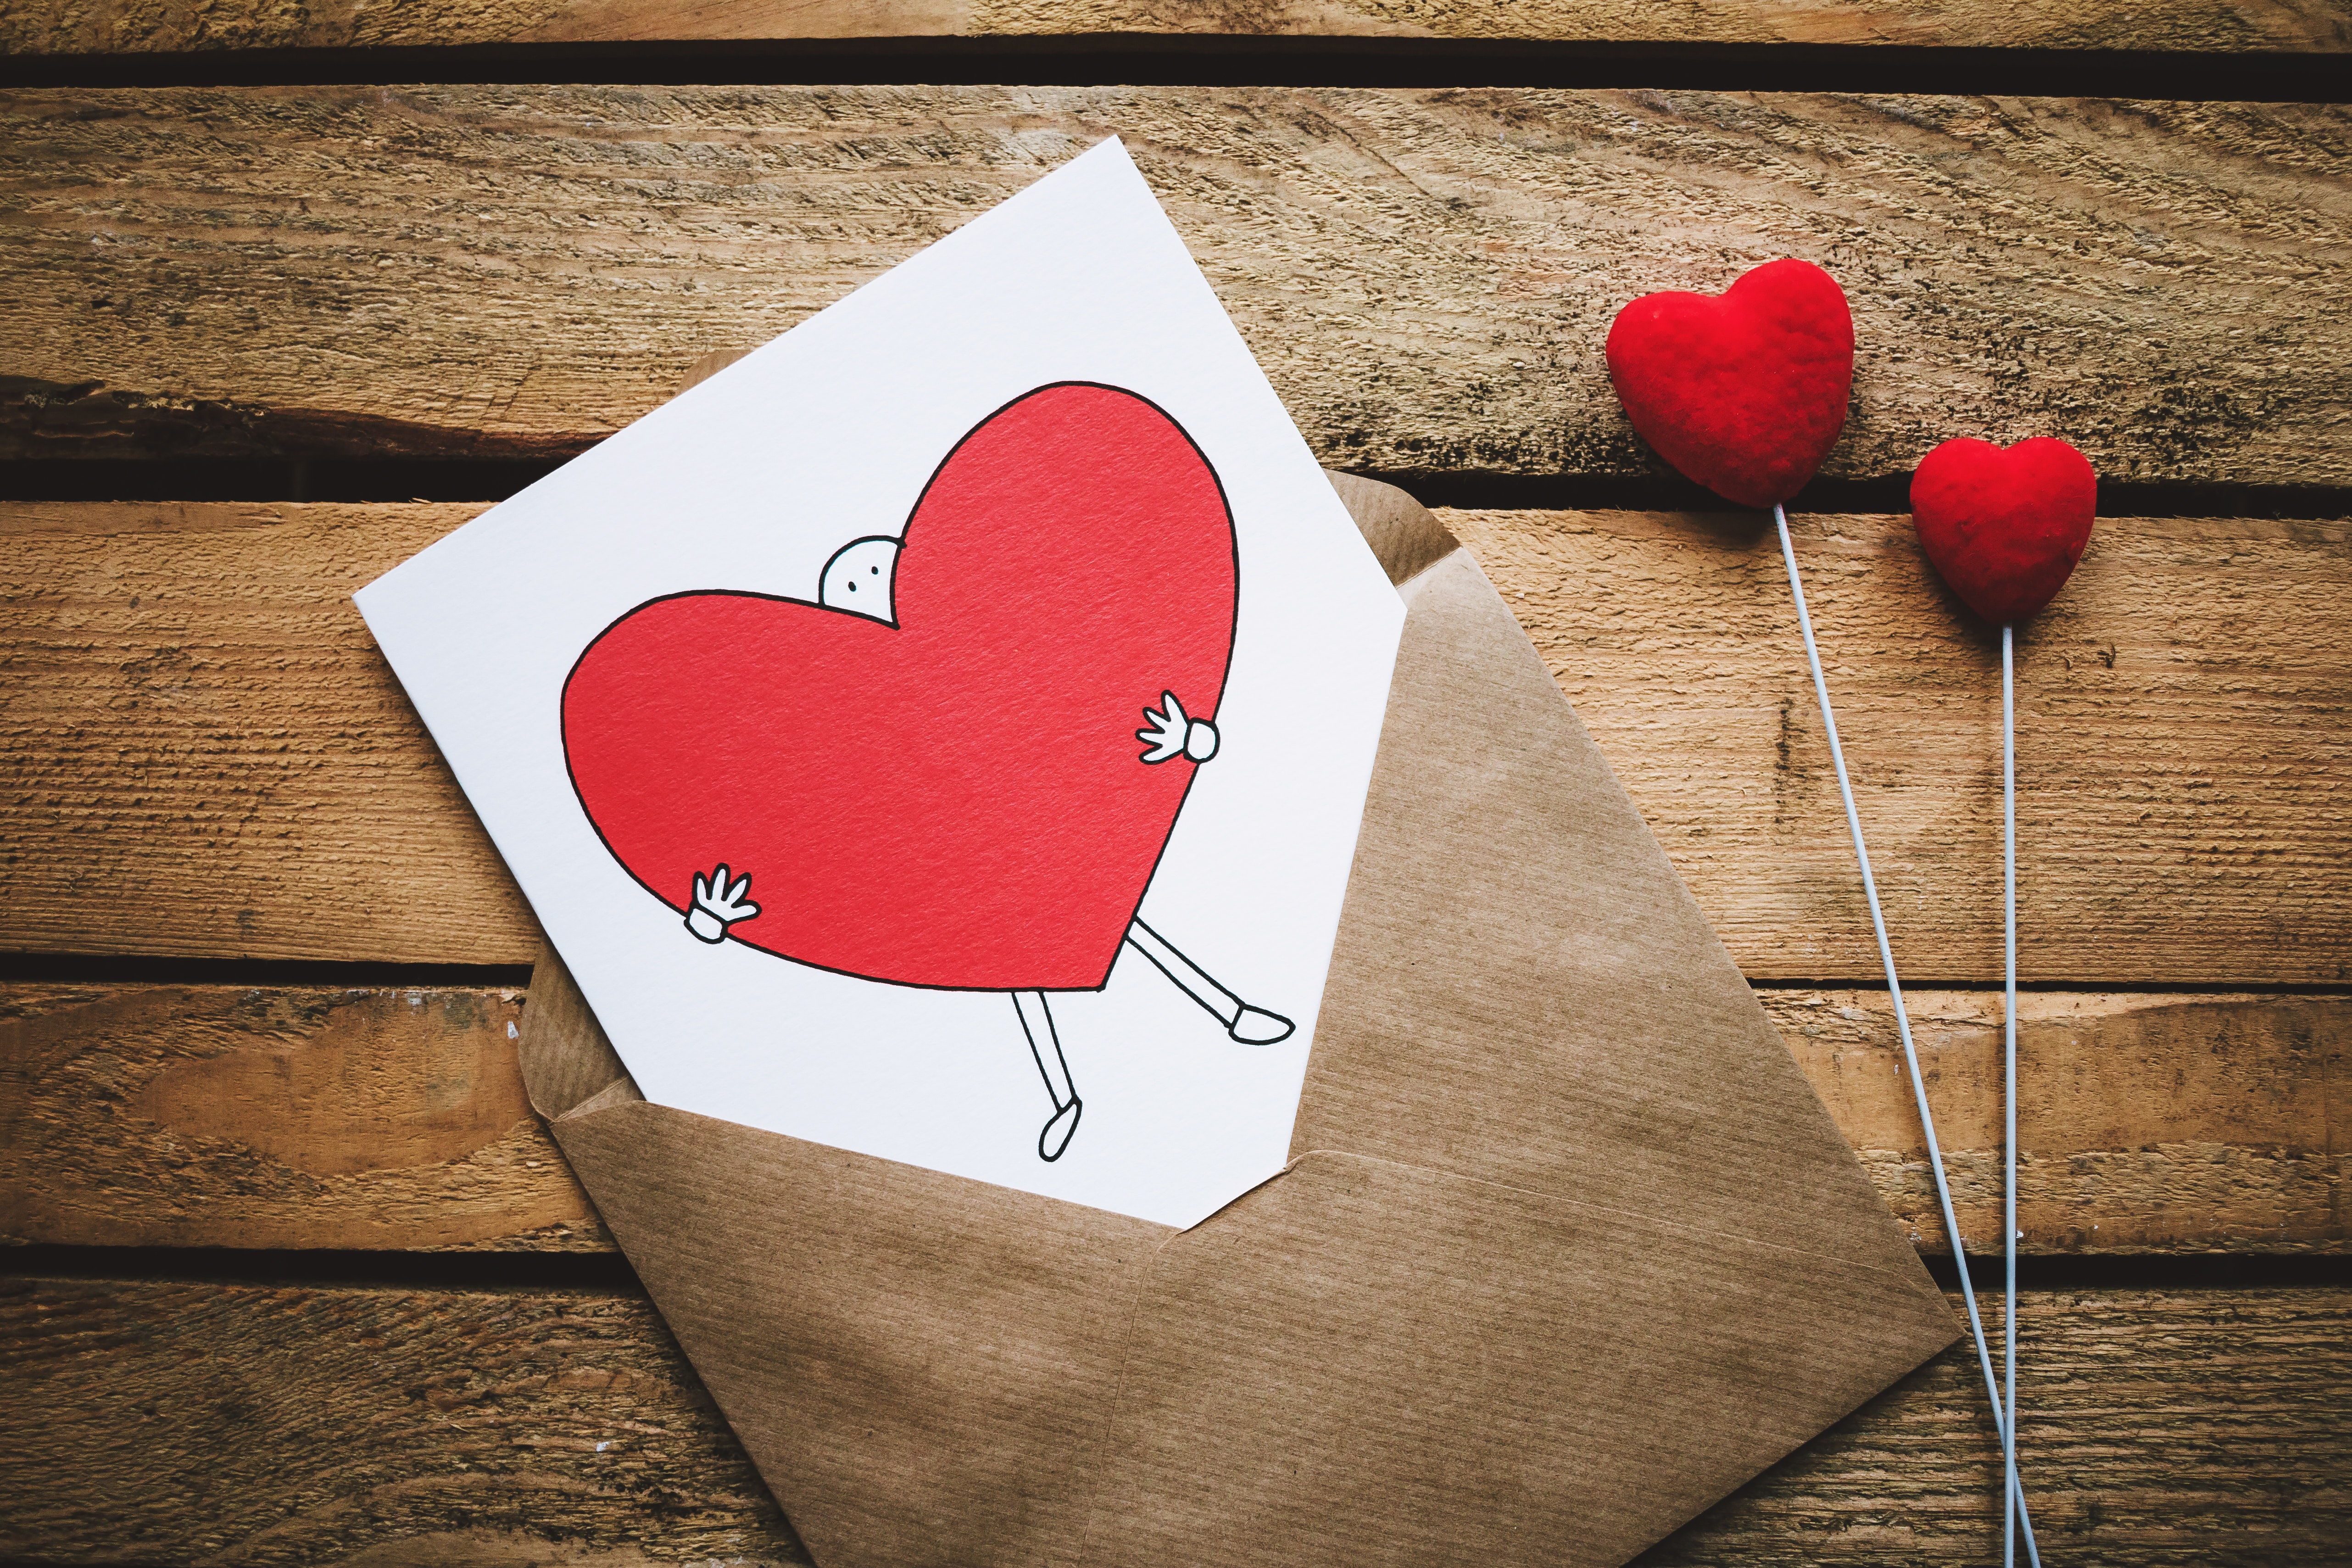 White, Black, and Red Person Carrying Heart Illustration in Brown Envelope, Paper, Wood, Valentines day, Table, HQ Photo